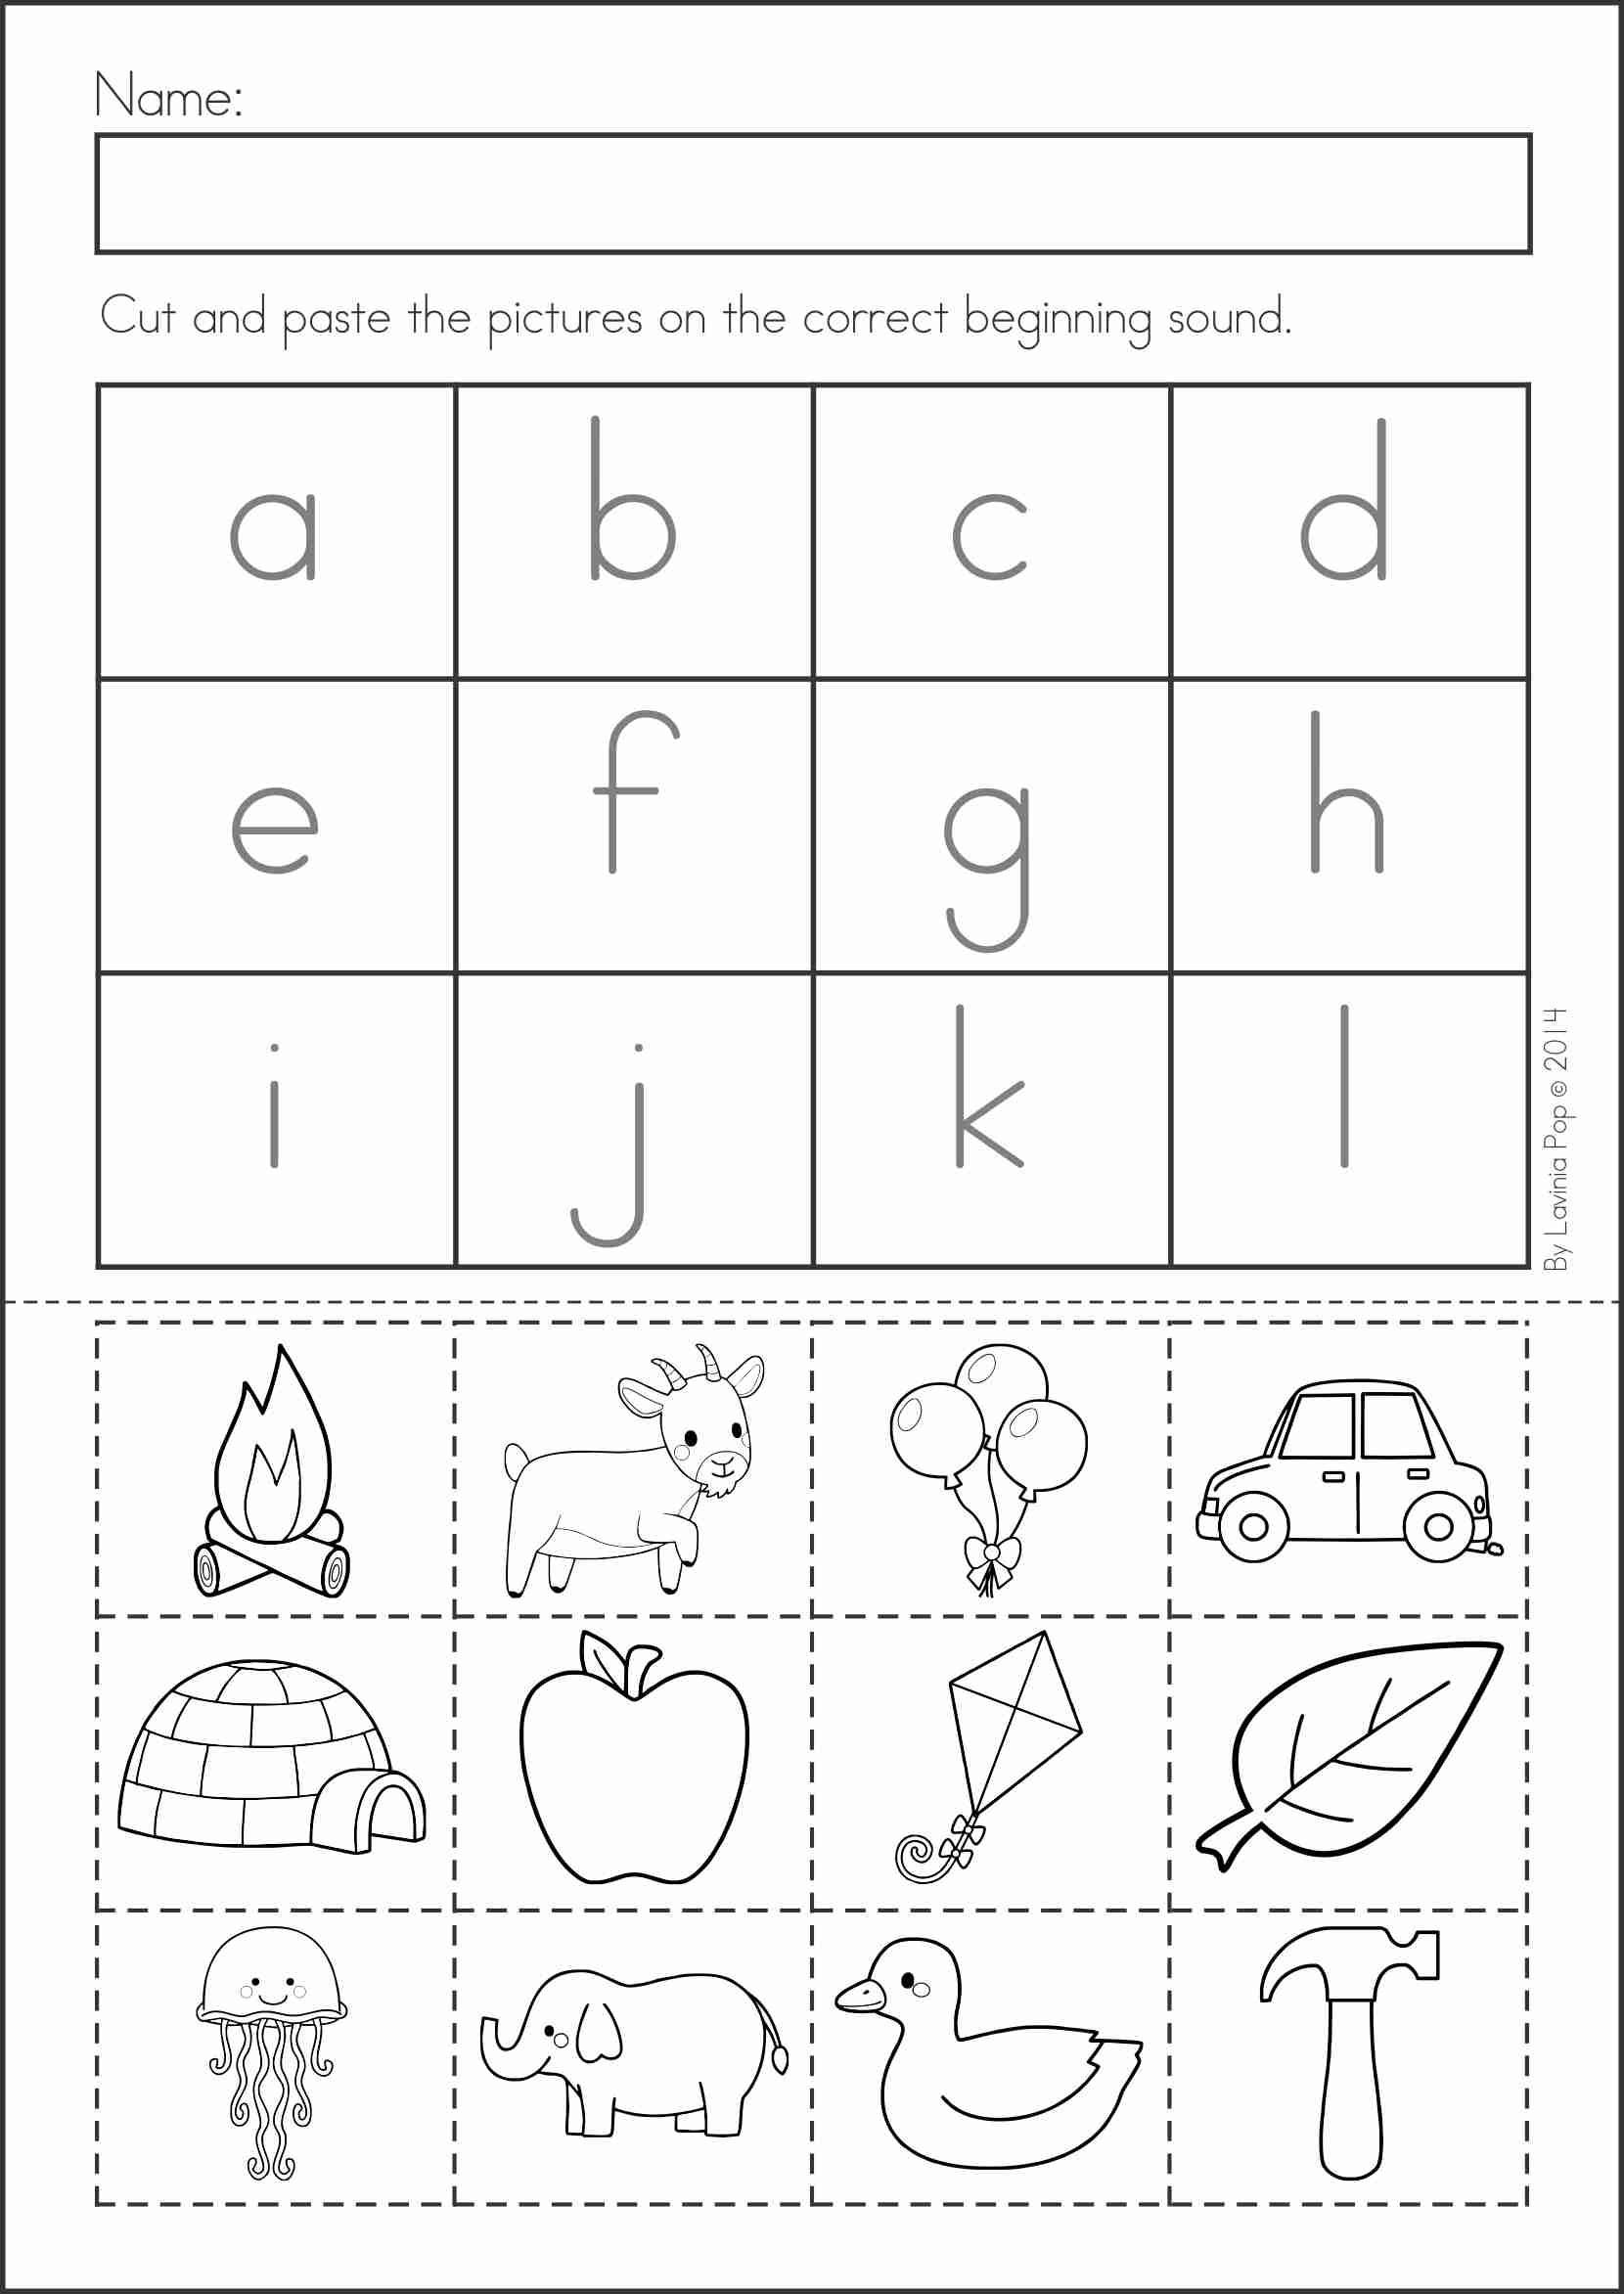 Worksheets Cut And Paste Worksheets For Kindergarten summer review literacy worksheets math and kindergarten activities 104 pages a page from